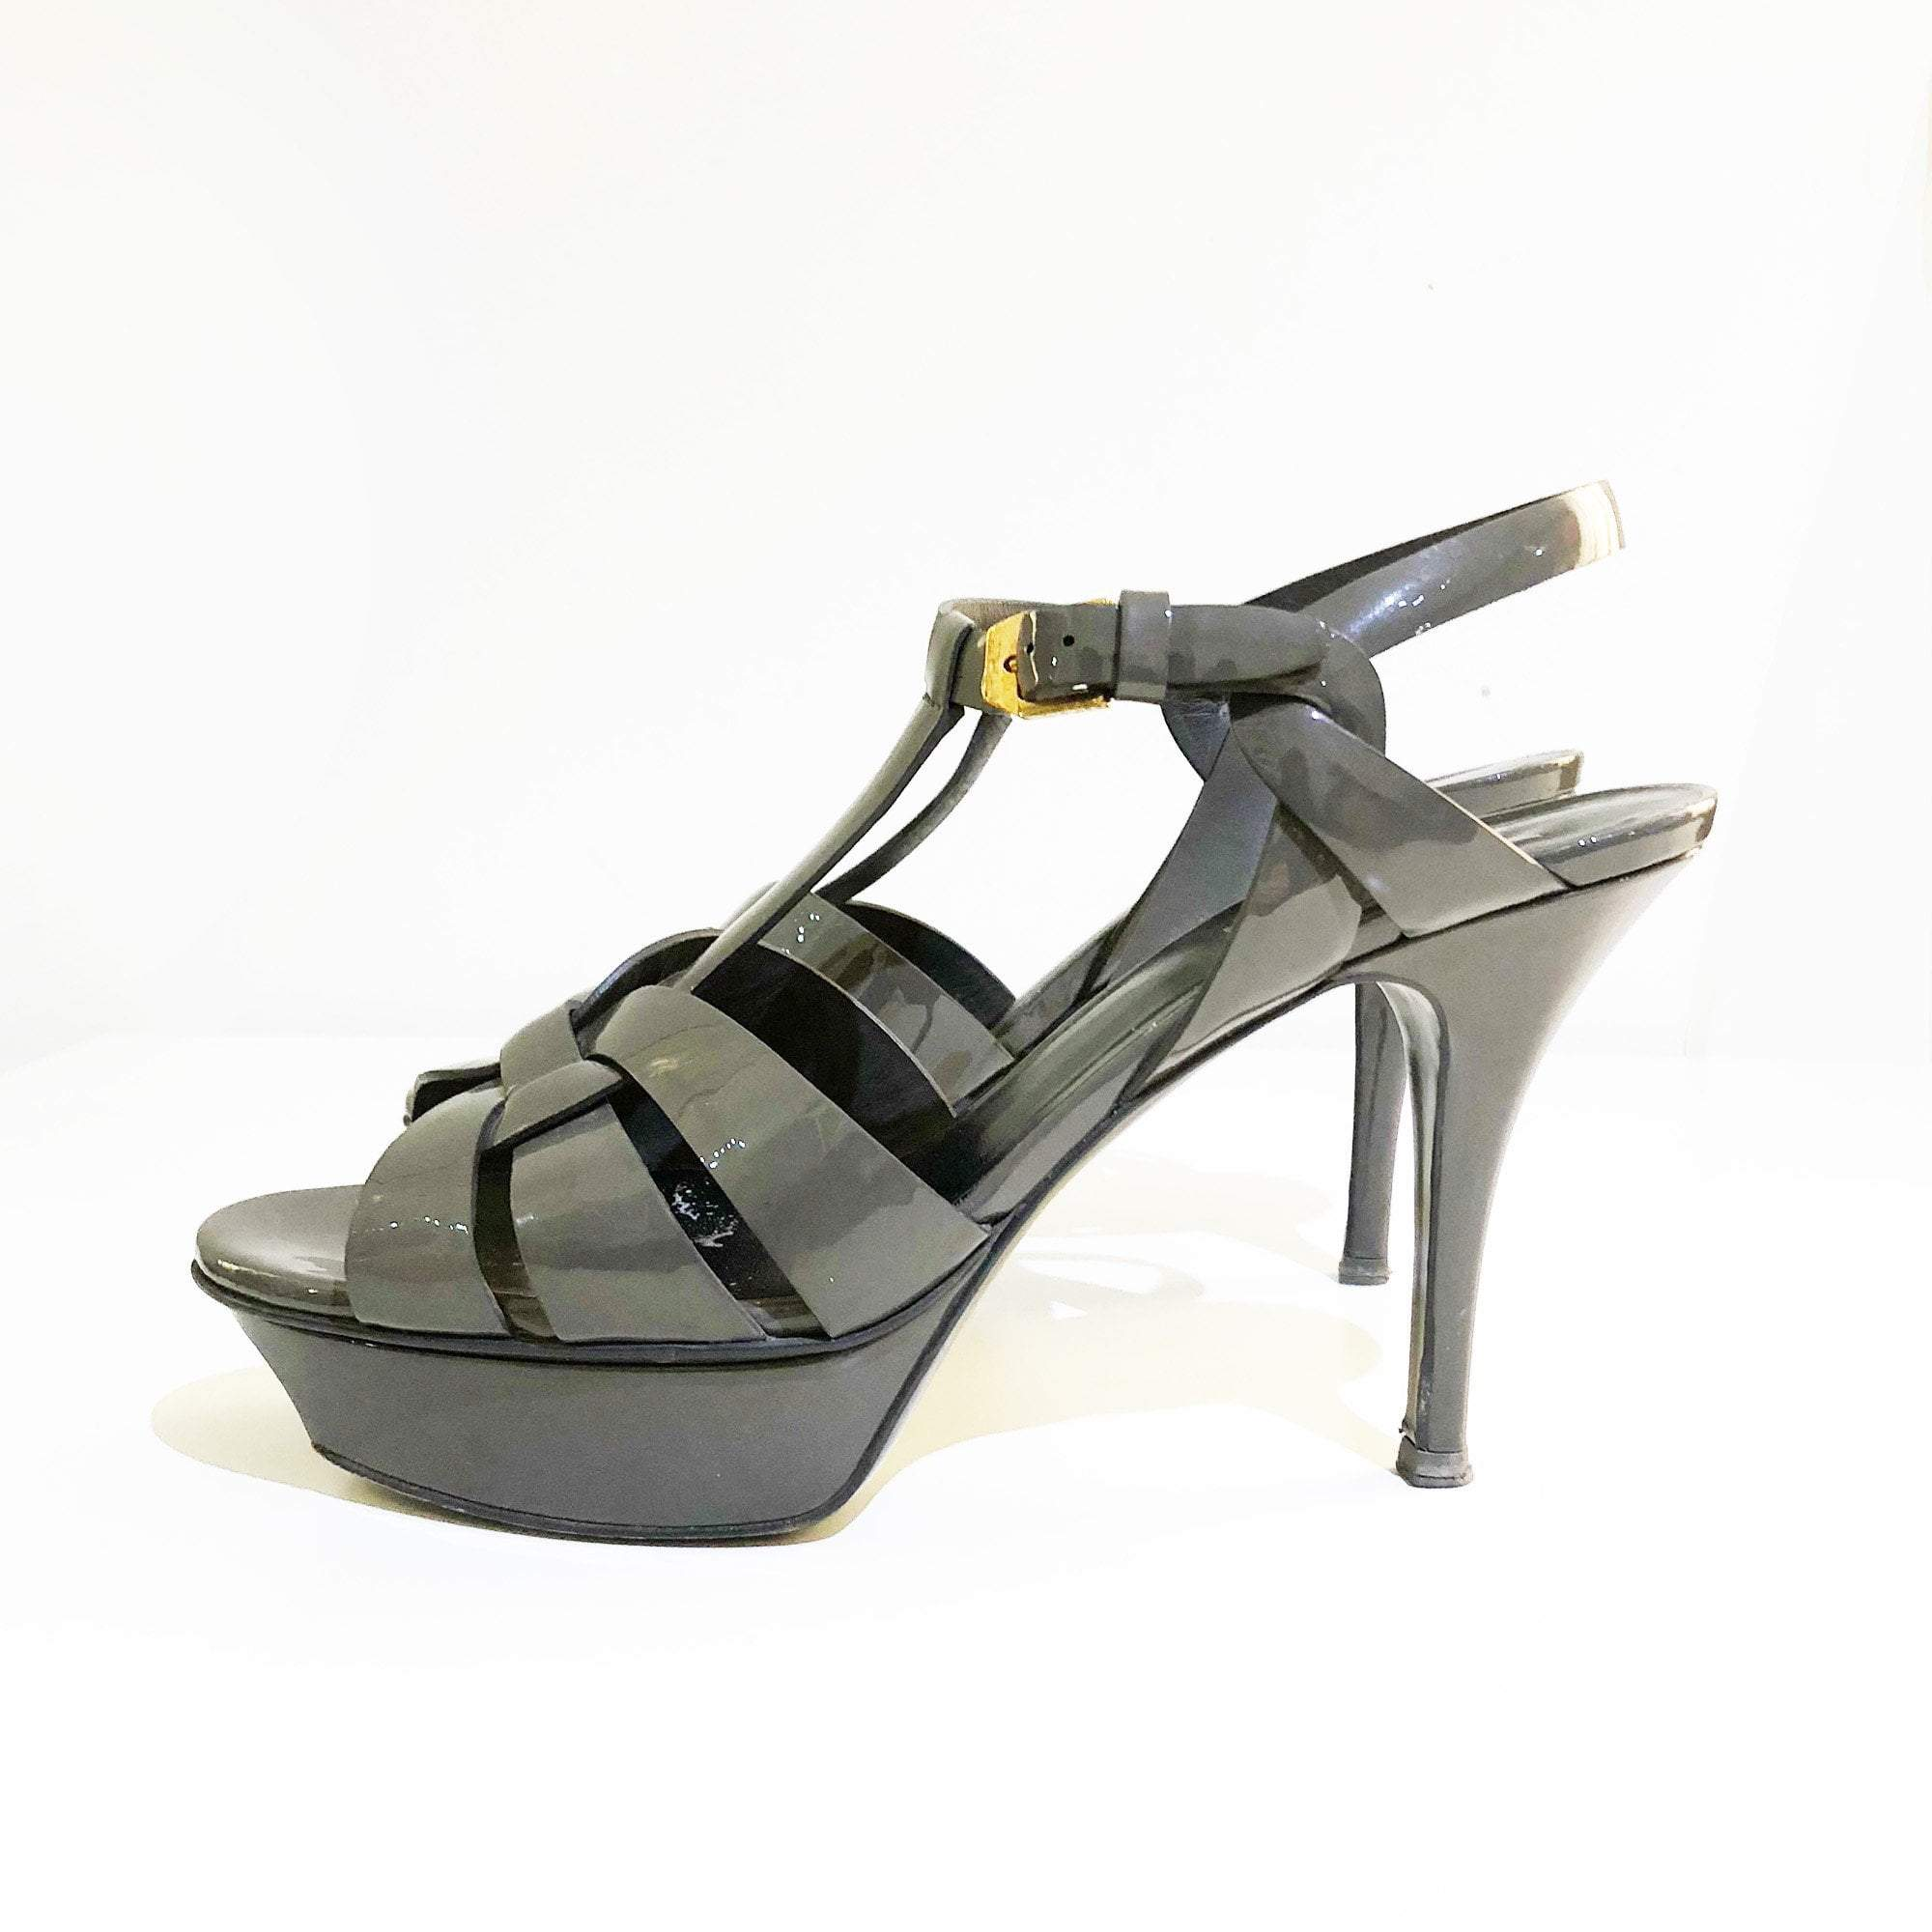 Saint Laurent Tribute Grey Sandal Heels